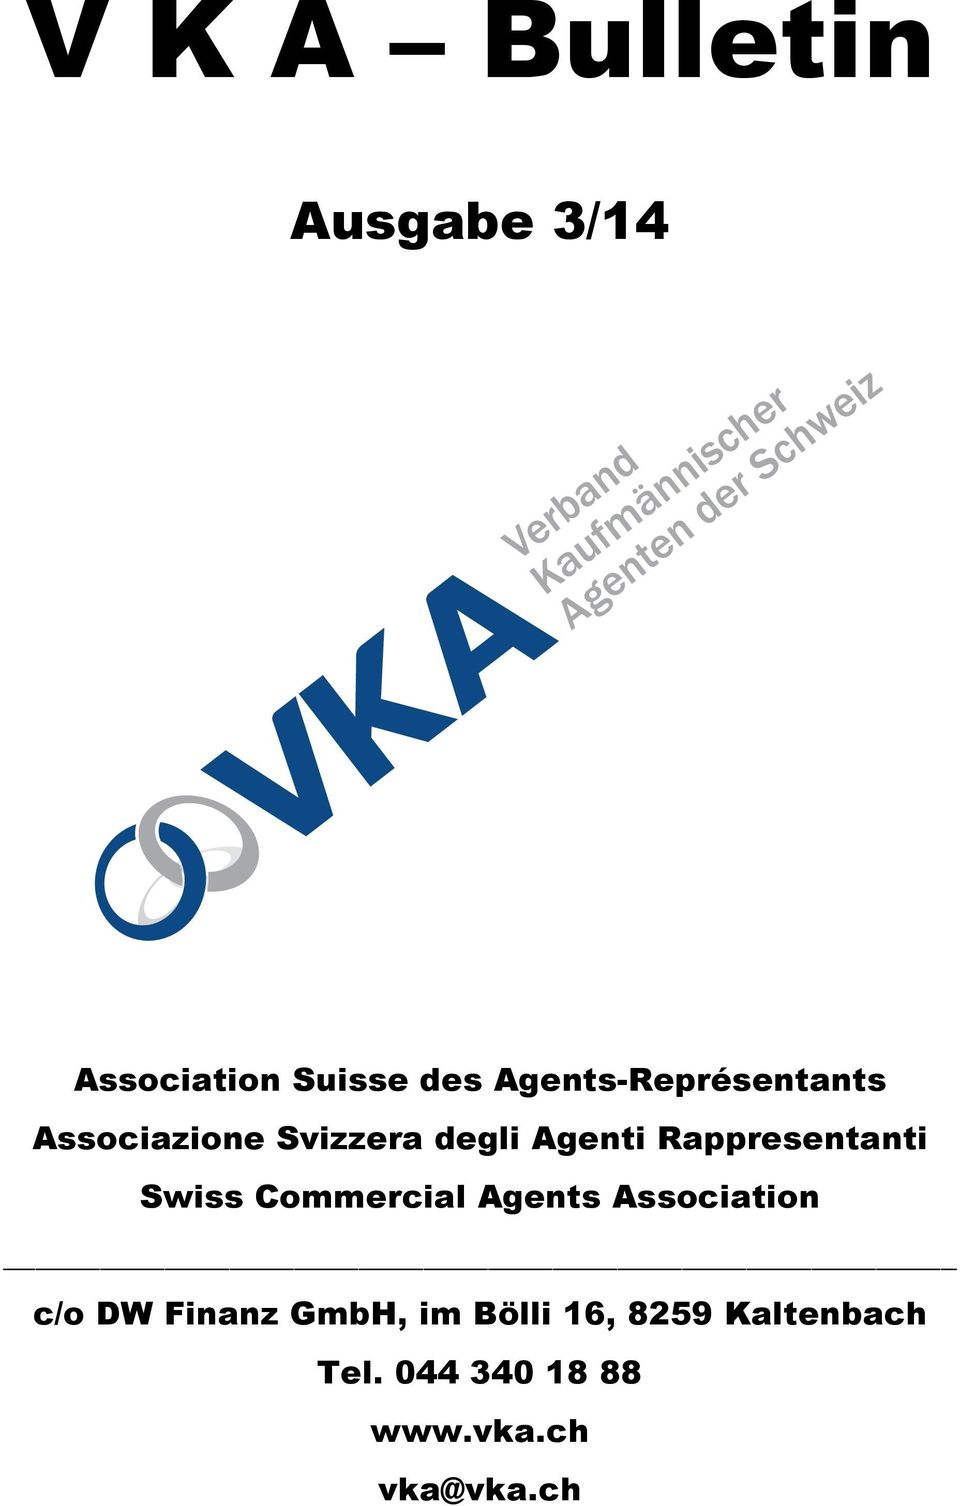 Rappresentanti Swiss Commercial Agents Association c/o DW